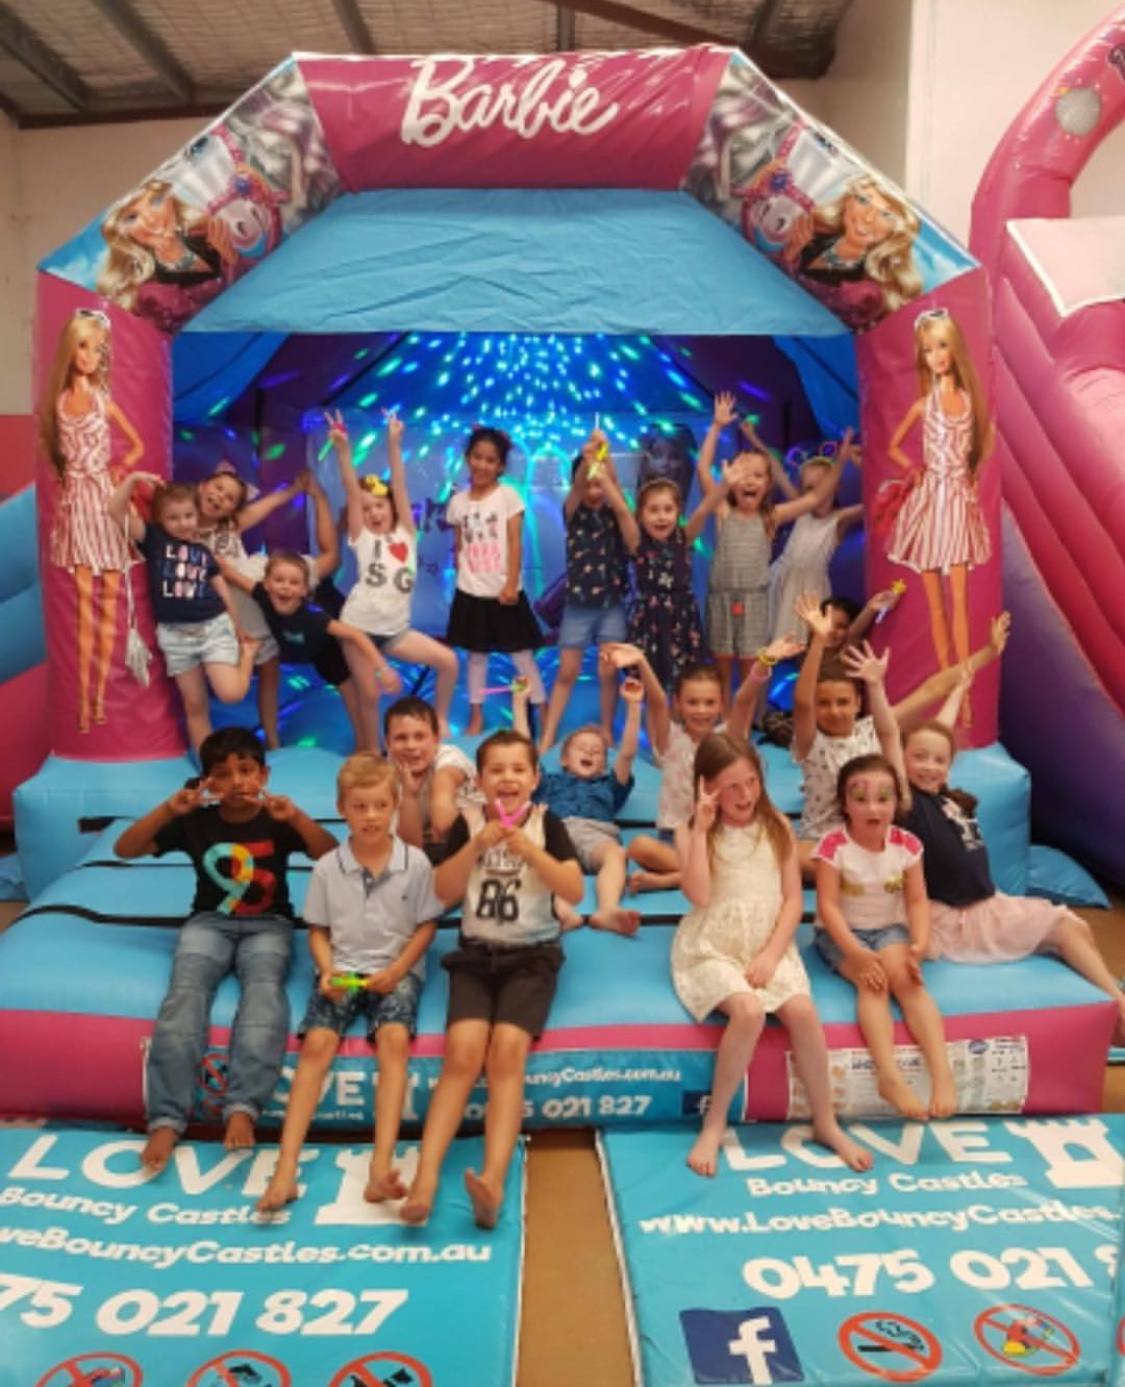 Copy of Kids Party With Children Playing On A Barbie Bouncy Castle That Was Hired Out In Perth